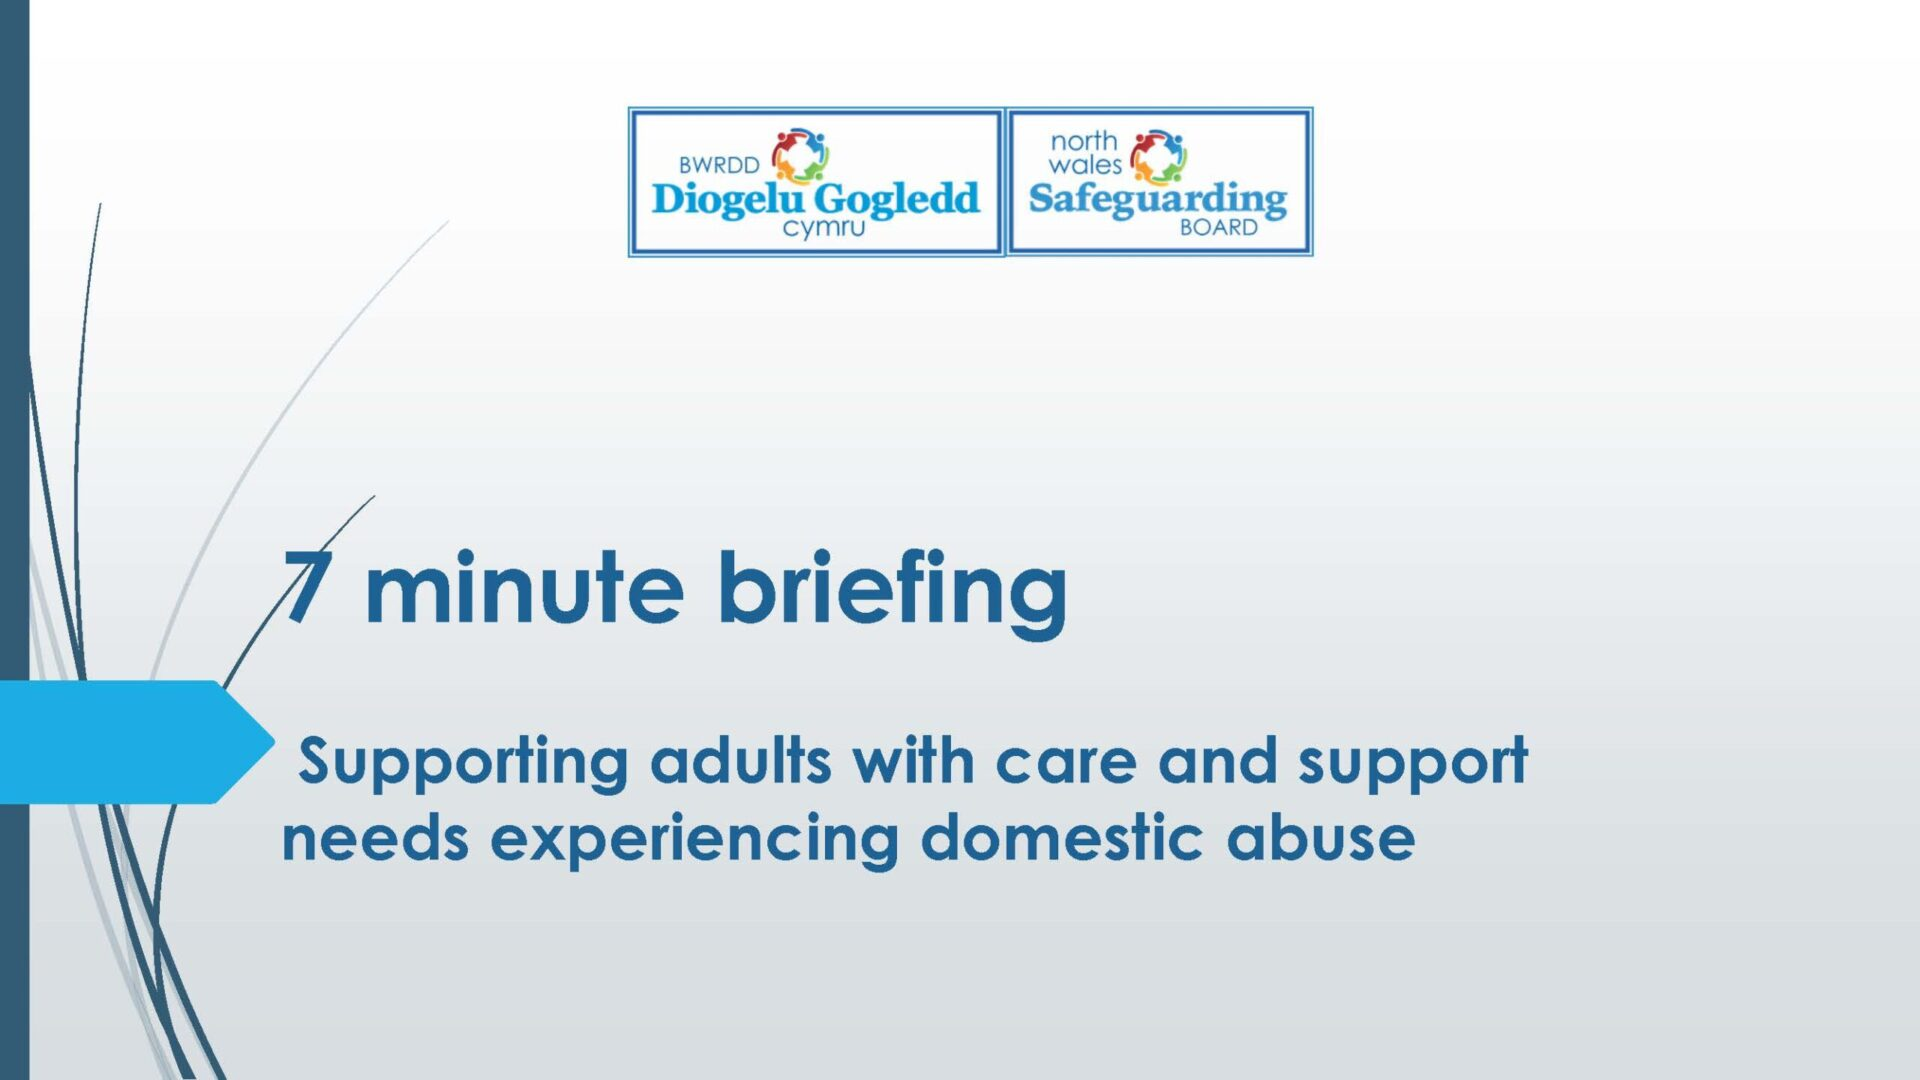 Supporting adults with care and support needs experiencing domestic abuse